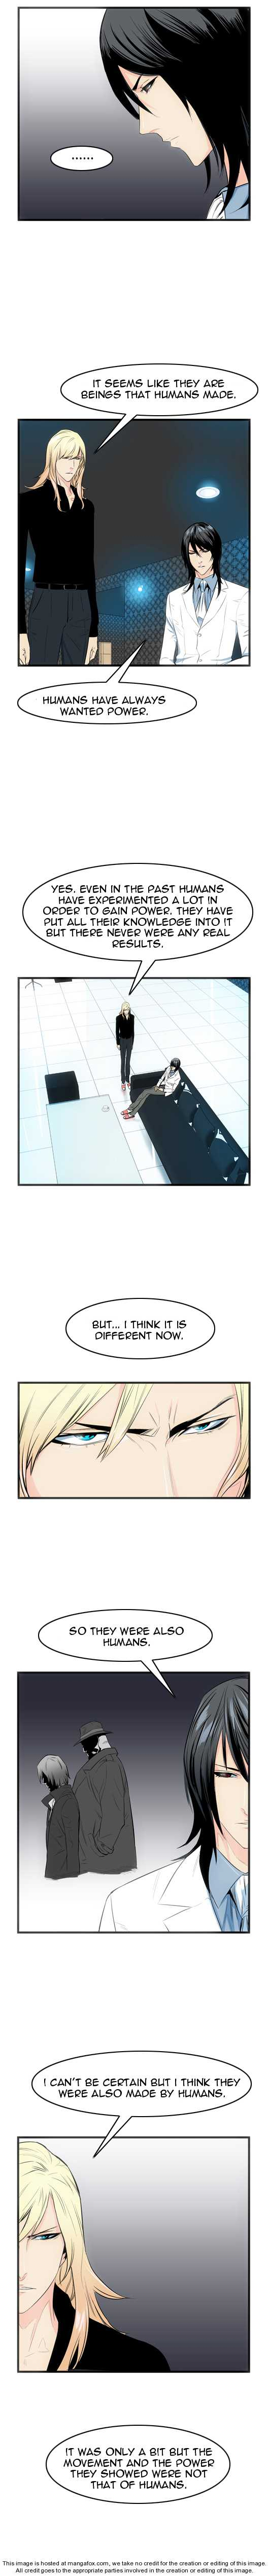 Noblesse 49 Page 2